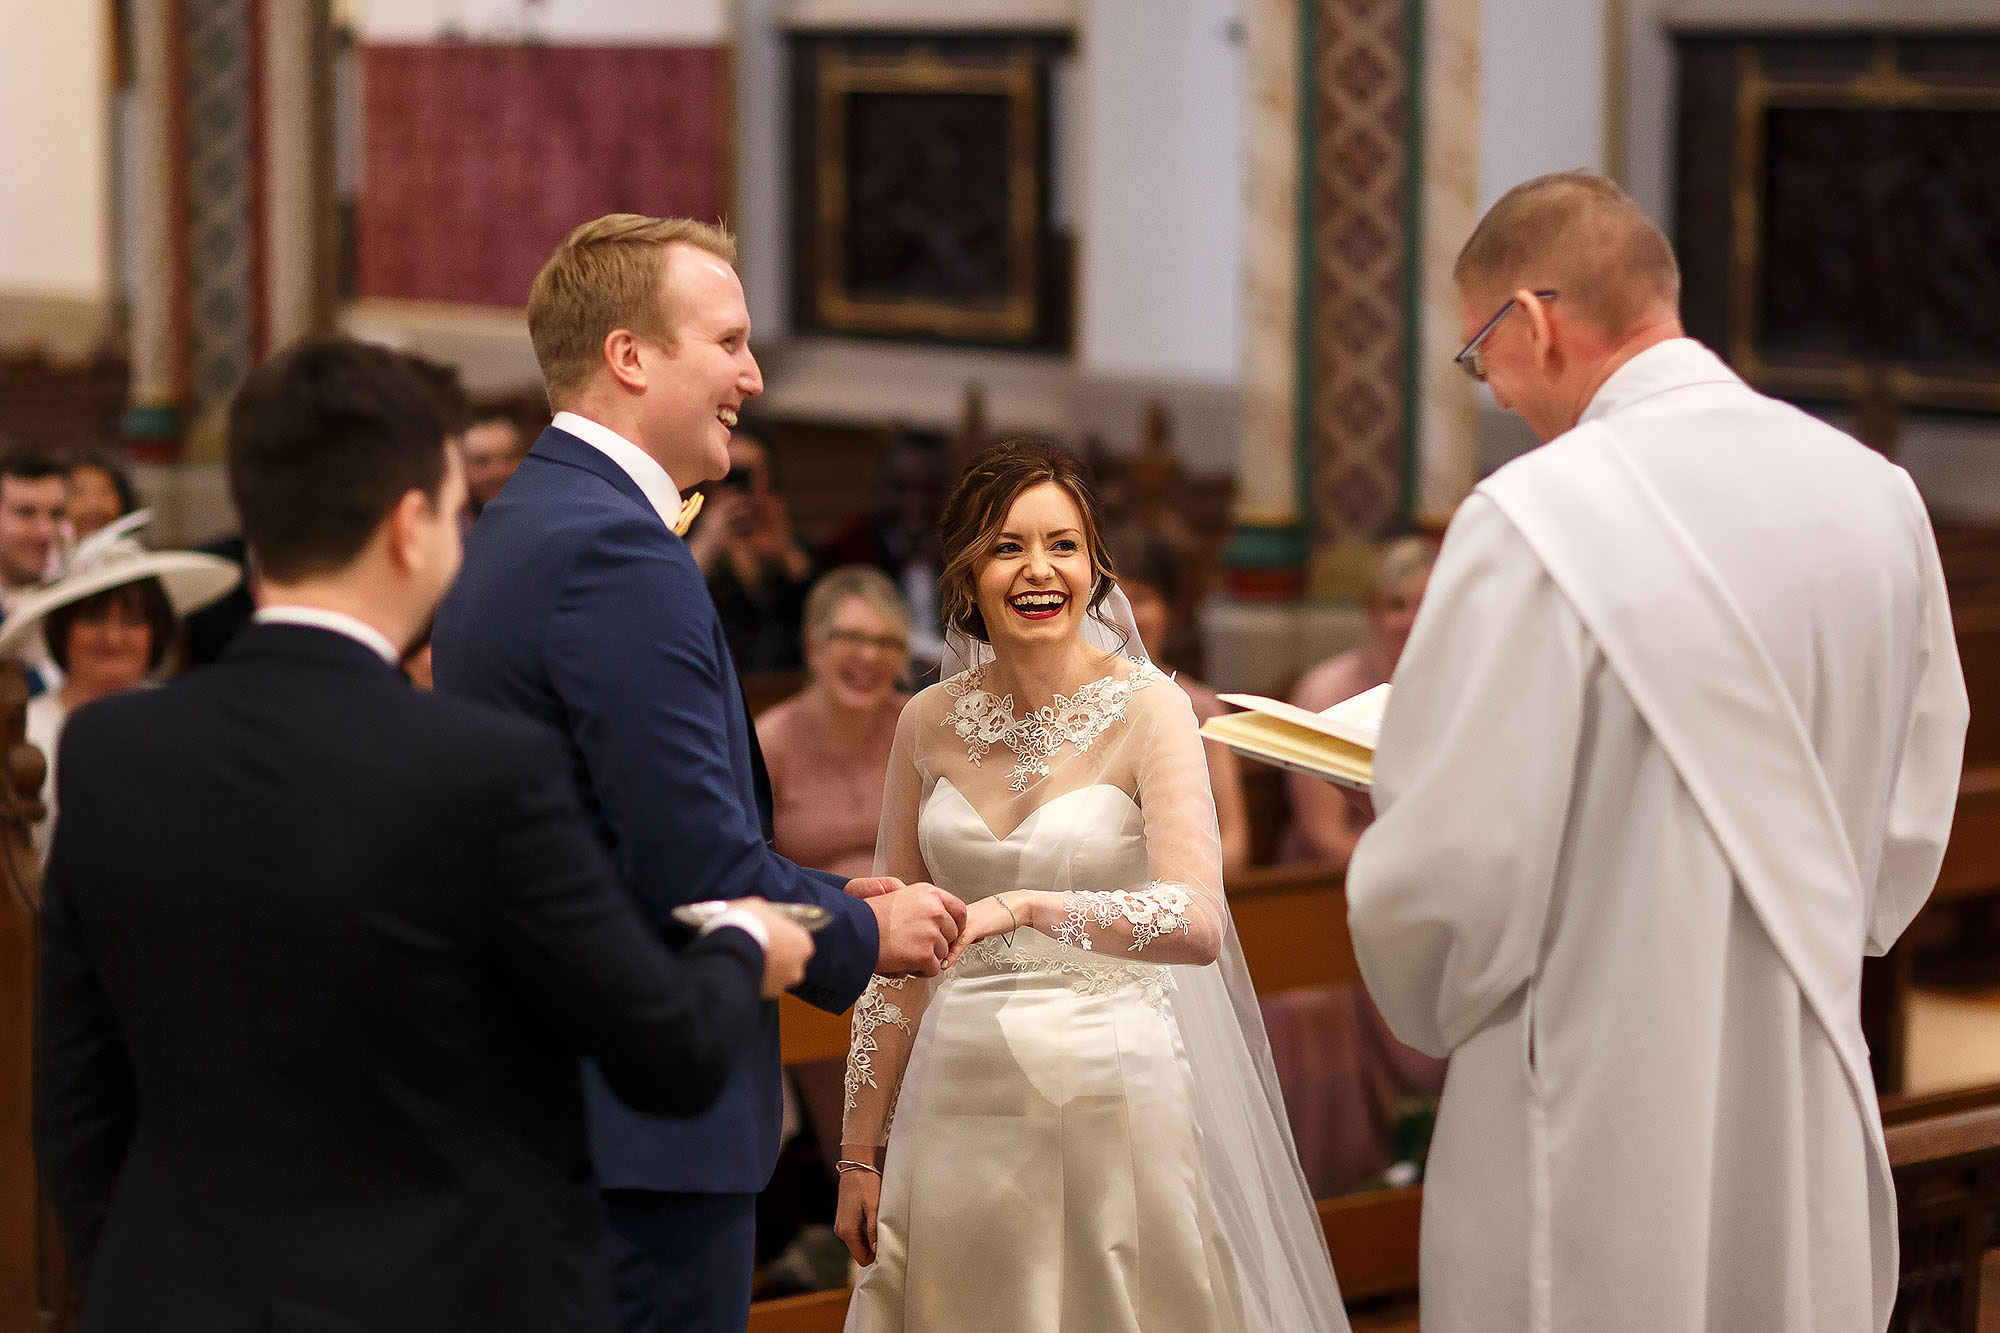 Bride and groom exchanging wedding rings during wedding ceremony at St Peters Stonyhurst | Mitton Hall wedding photographs by Toni Darcy Photography